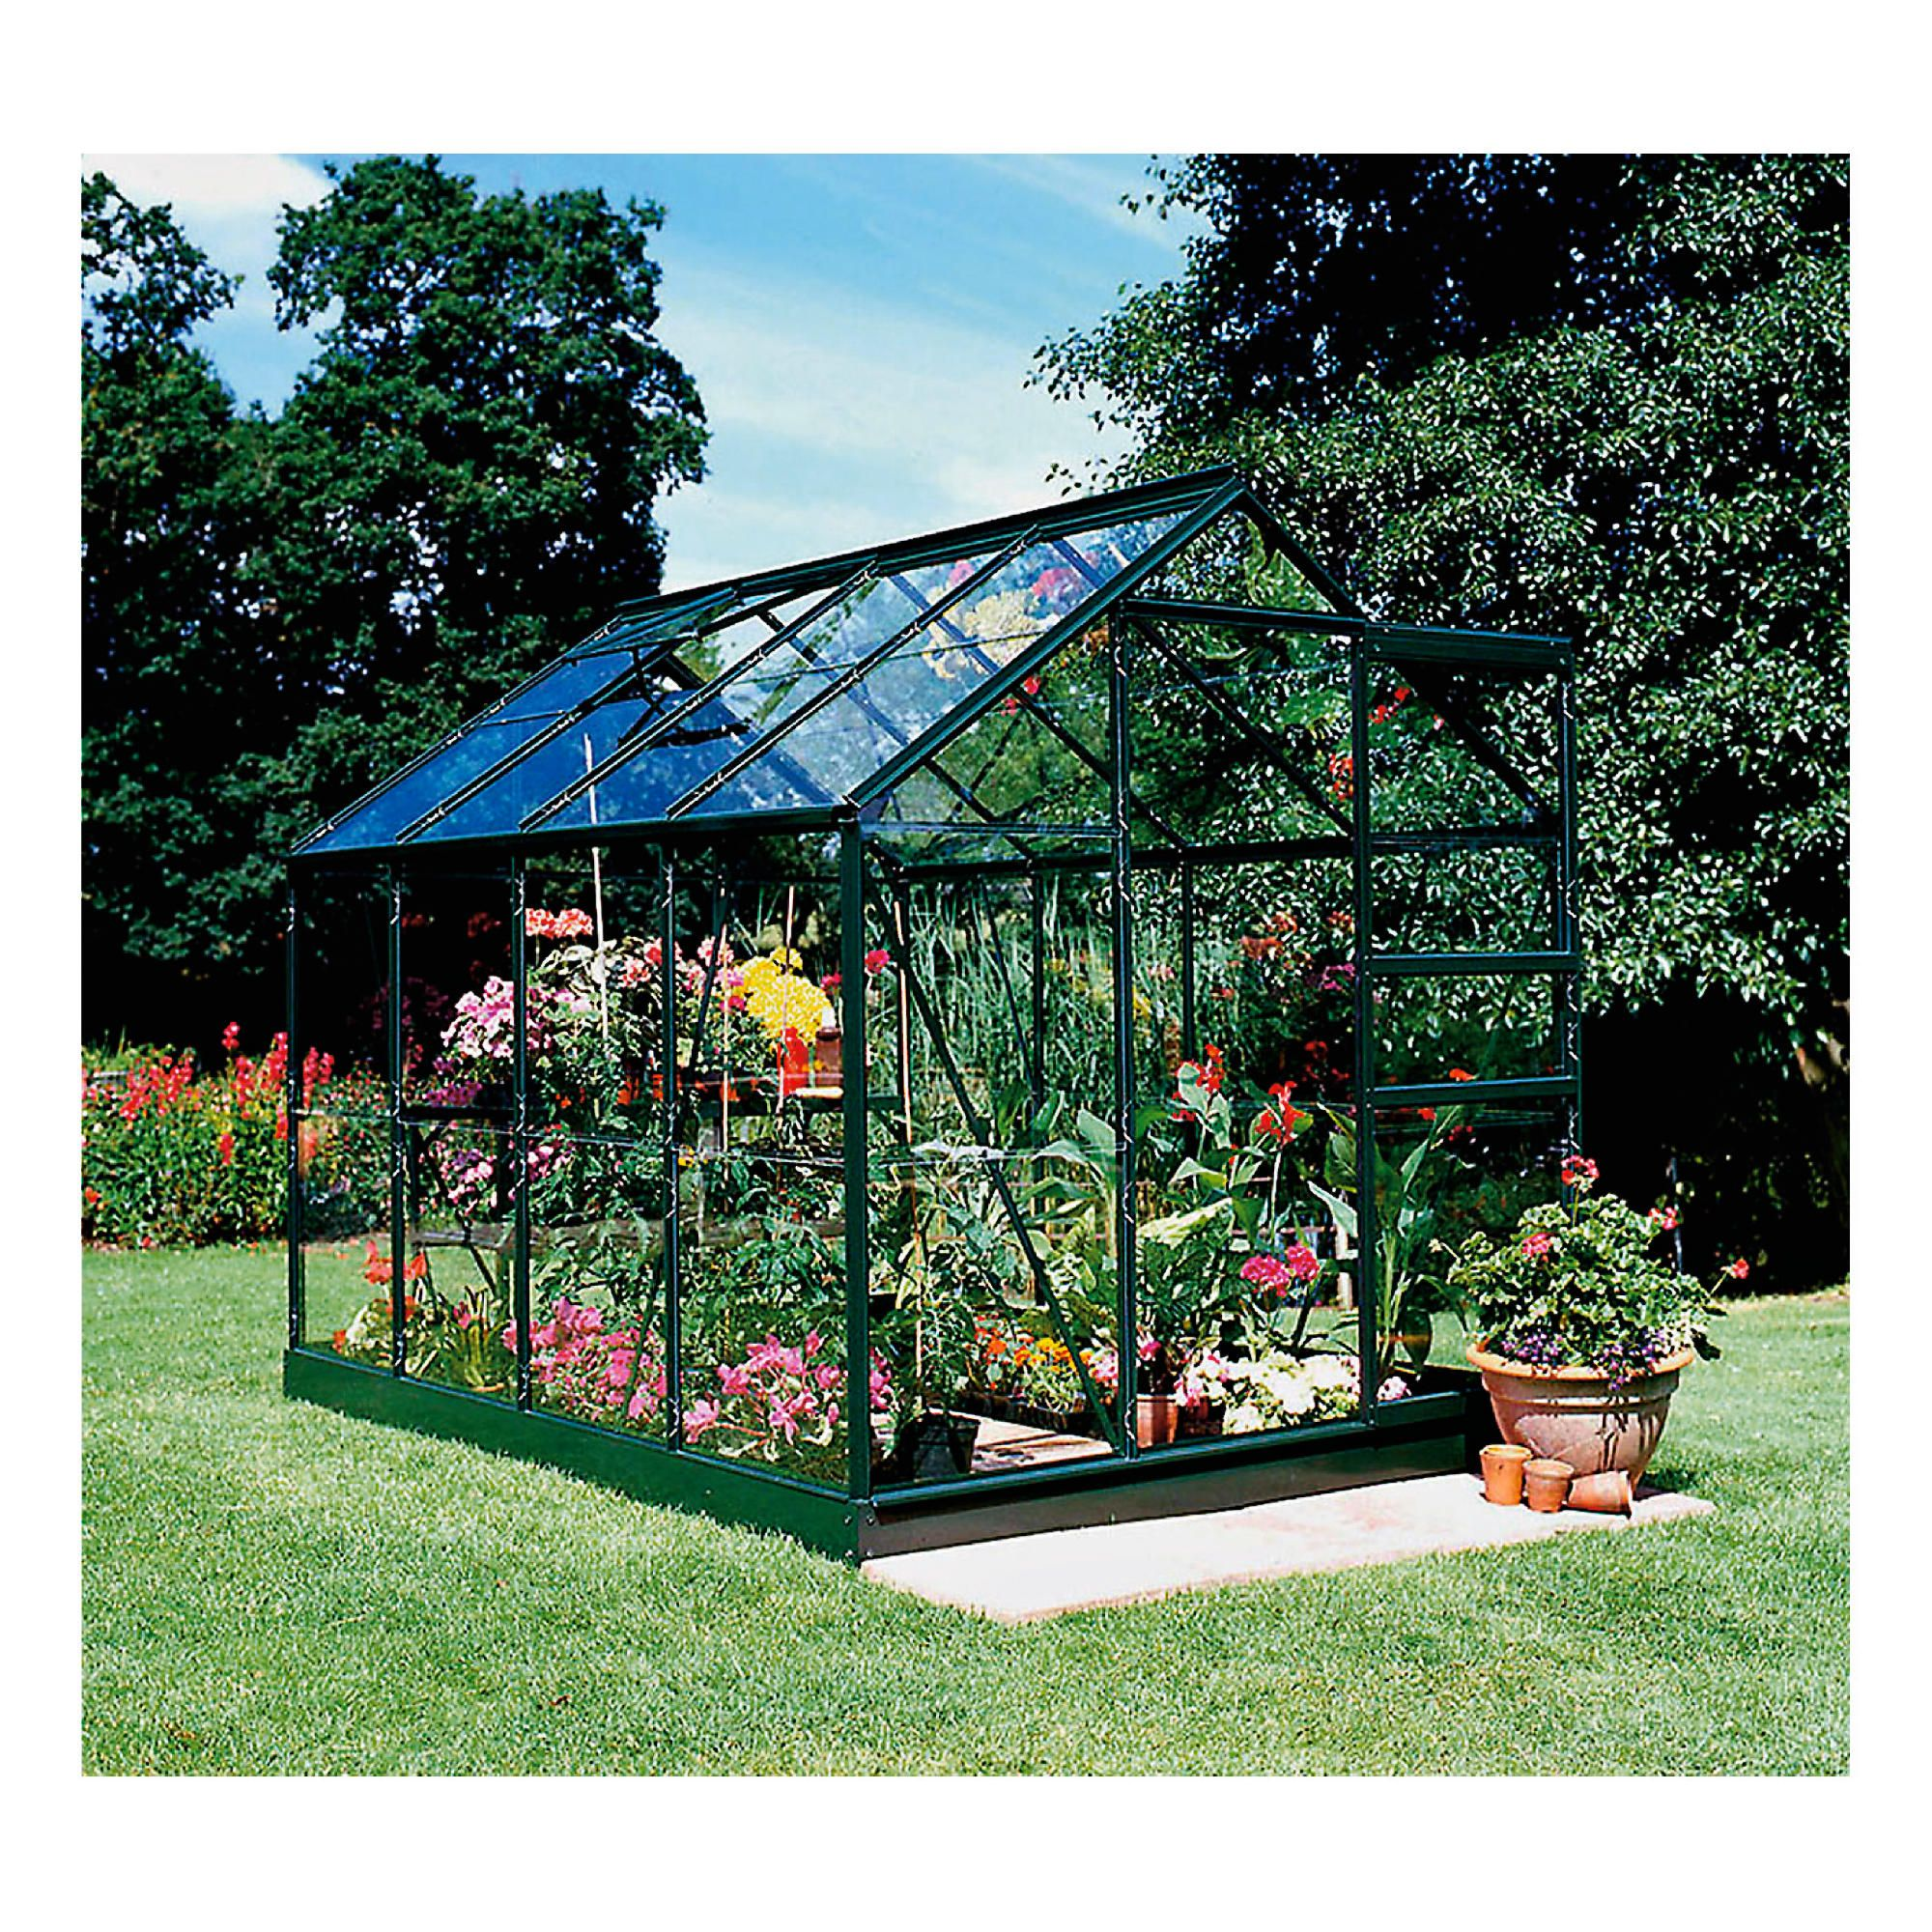 Halls 8x6 Popular Greenframe Greenhouse + Base - Toughened Glass at Tesco Direct